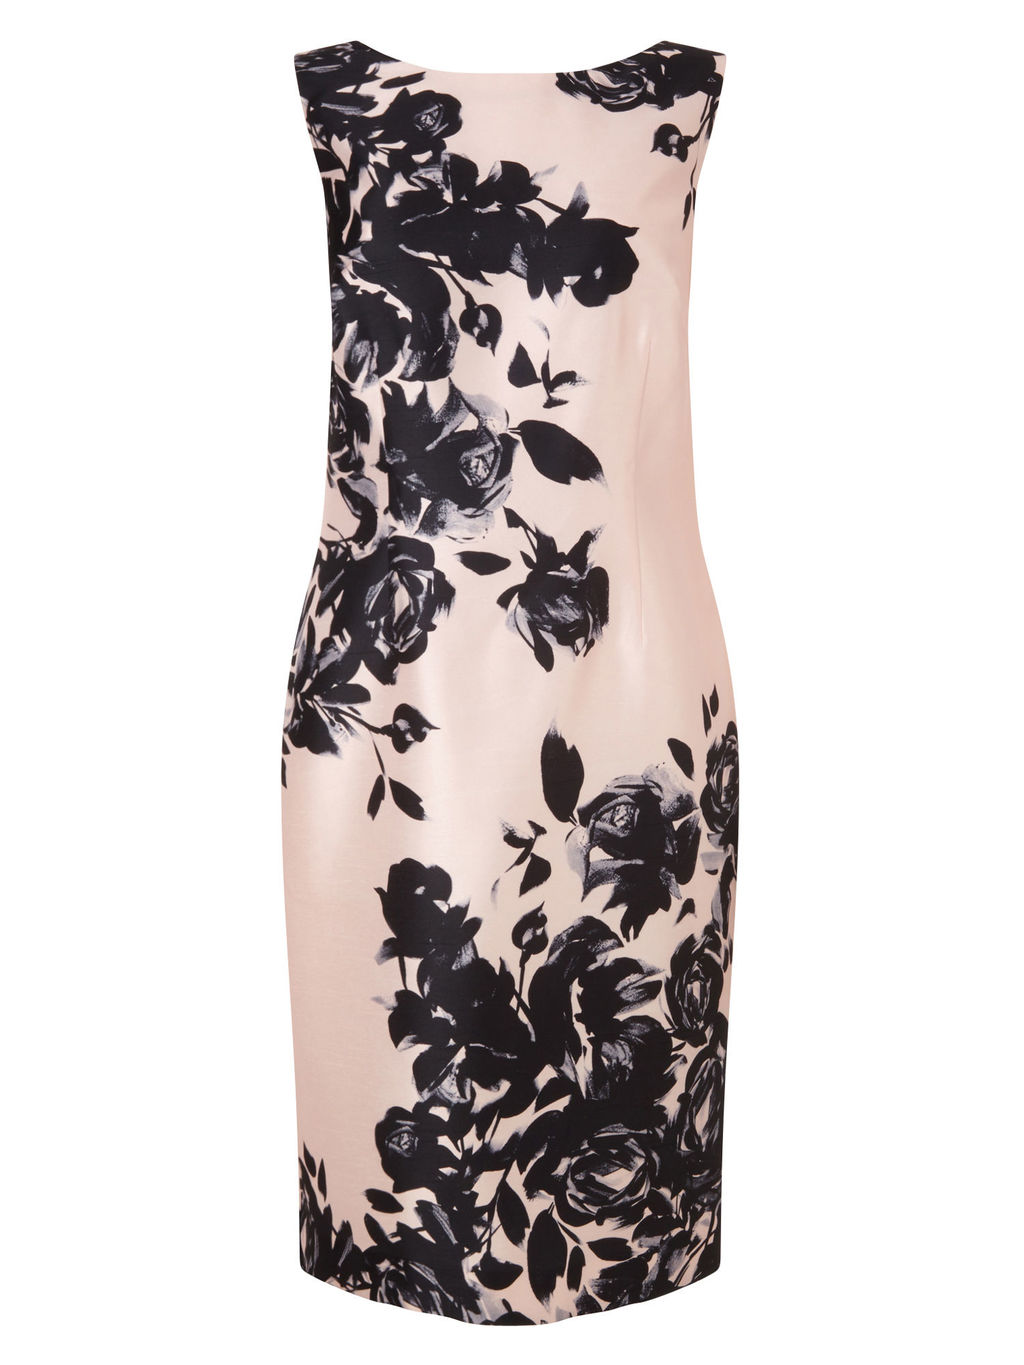 Placement Print Dress - style: shift; neckline: slash/boat neckline; fit: tight; sleeve style: sleeveless; predominant colour: blush; secondary colour: black; occasions: evening, occasion; length: just above the knee; fibres: polyester/polyamide - 100%; sleeve length: sleeveless; pattern type: fabric; pattern size: light/subtle; pattern: florals; texture group: woven light midweight; season: s/s 2016